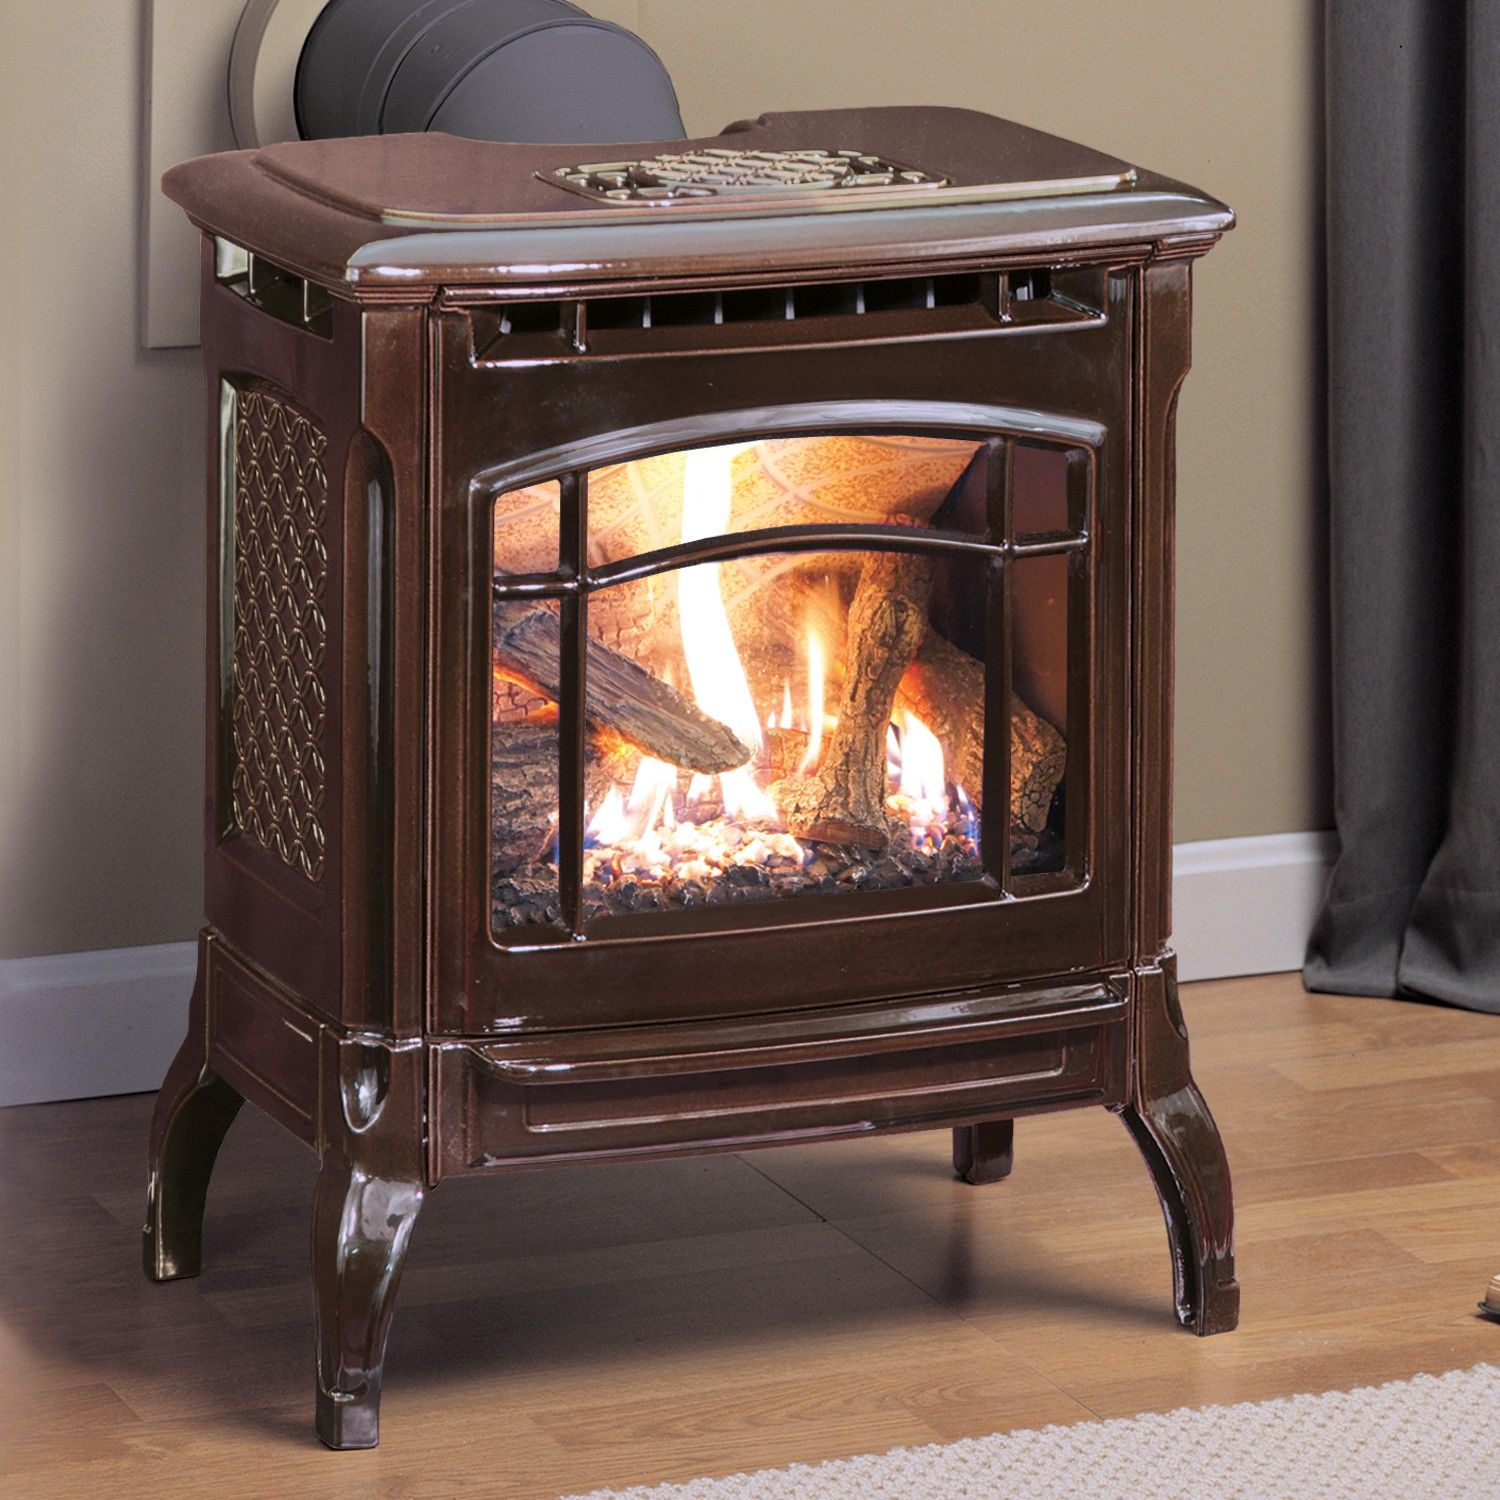 STOWE DX 8322 gas stove with brown enamel finish, by ...